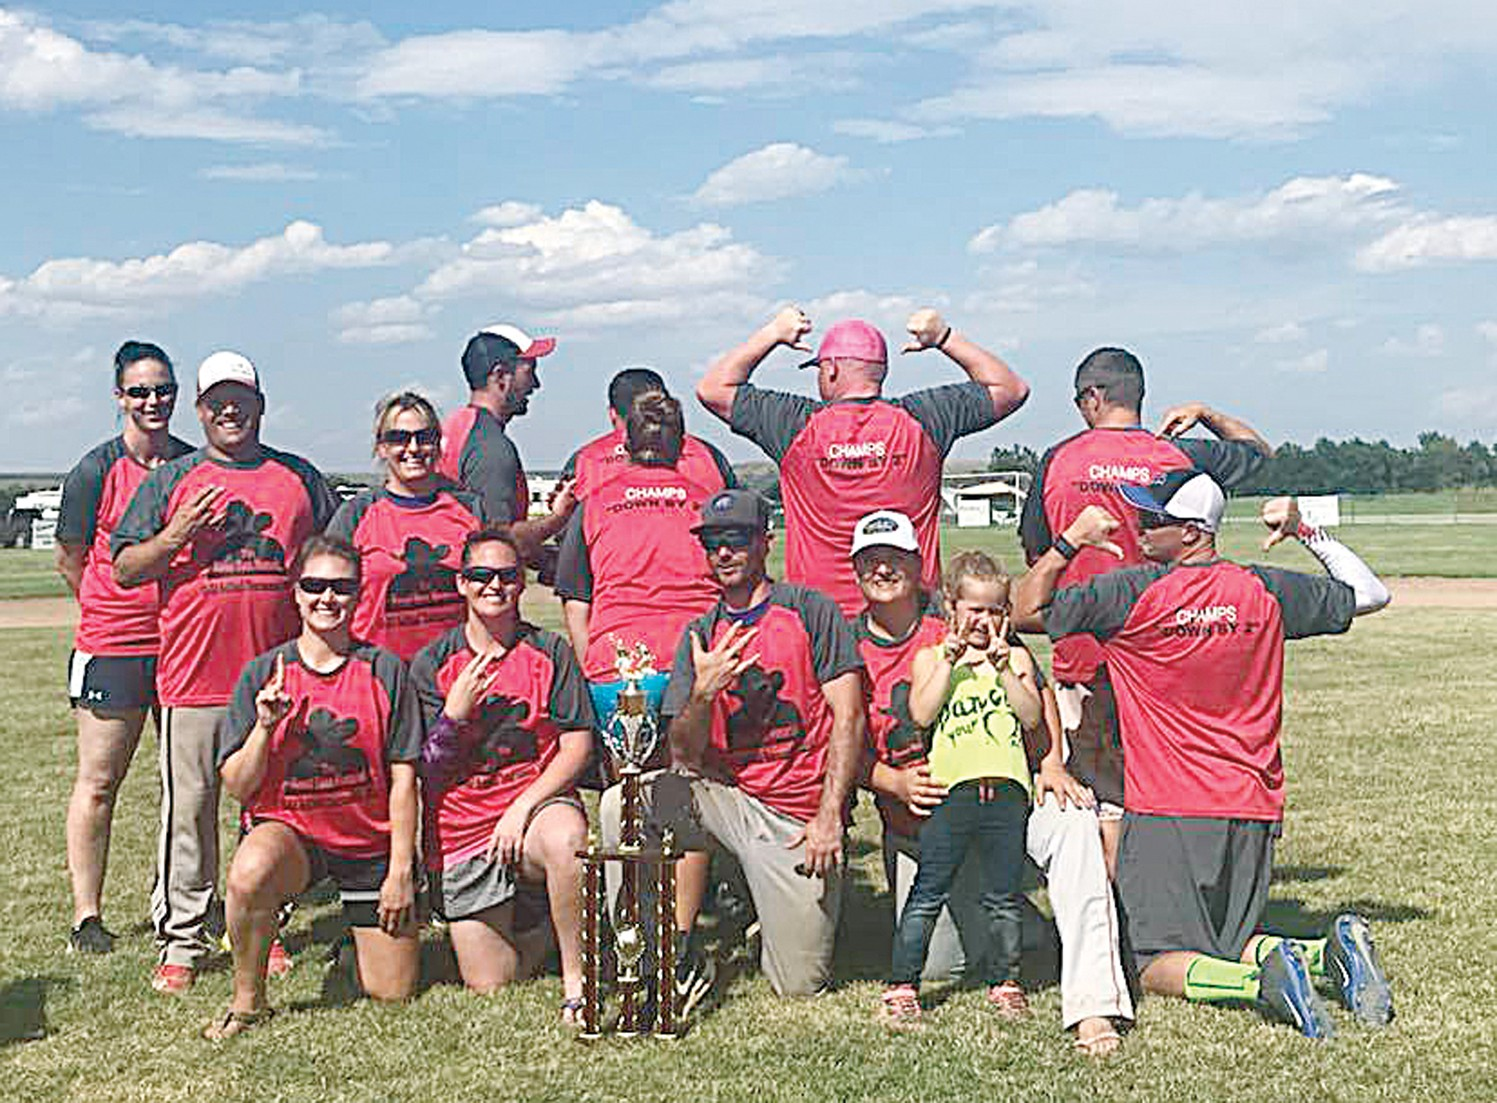 Photo courtesy of George BergThe first place team was the Shockers out of Billings.